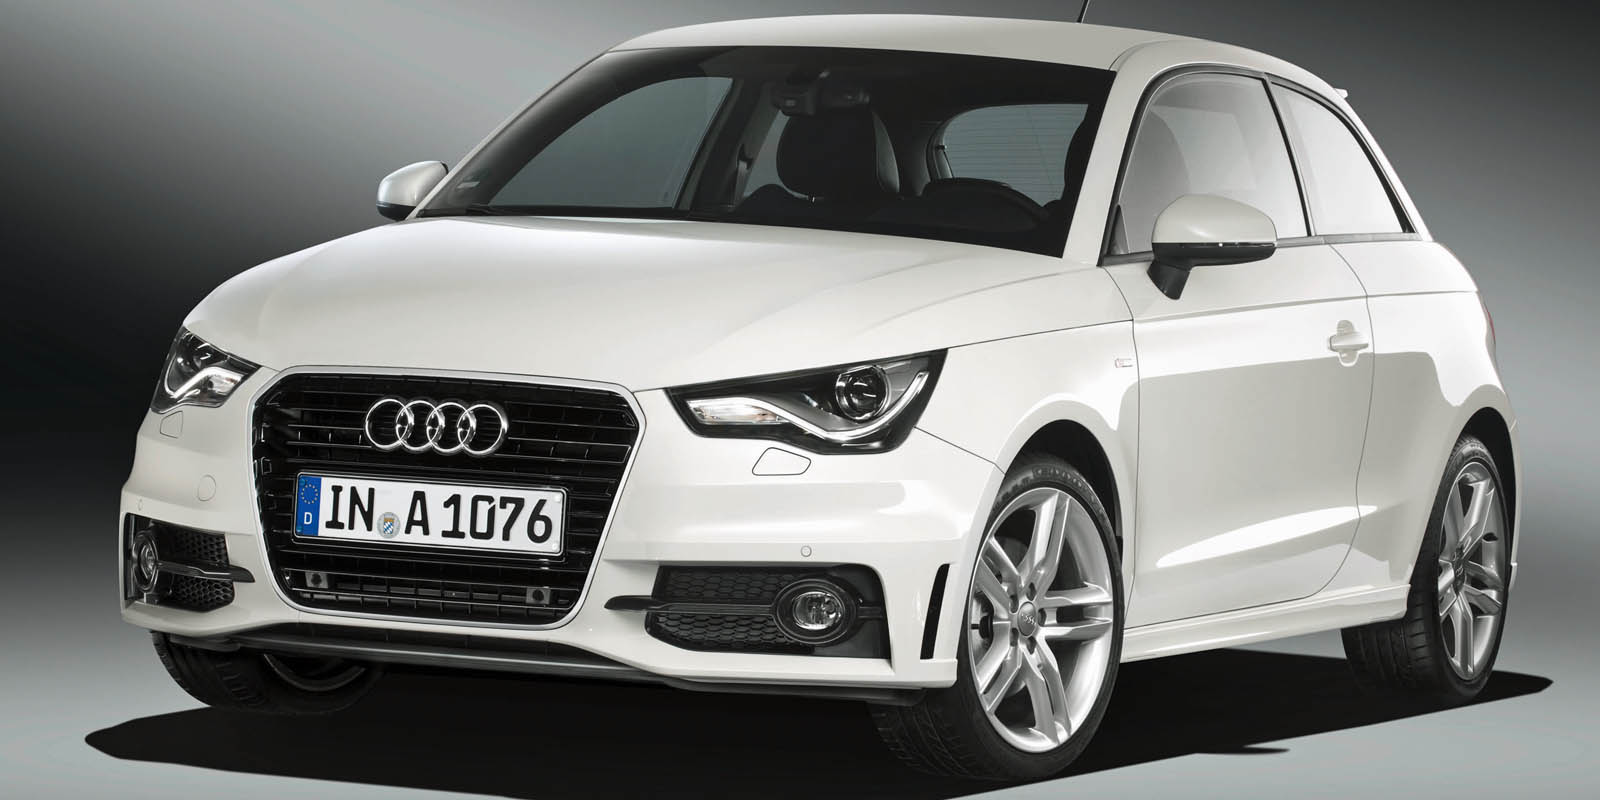 automobiles tout savoir sur les marques audi a1. Black Bedroom Furniture Sets. Home Design Ideas